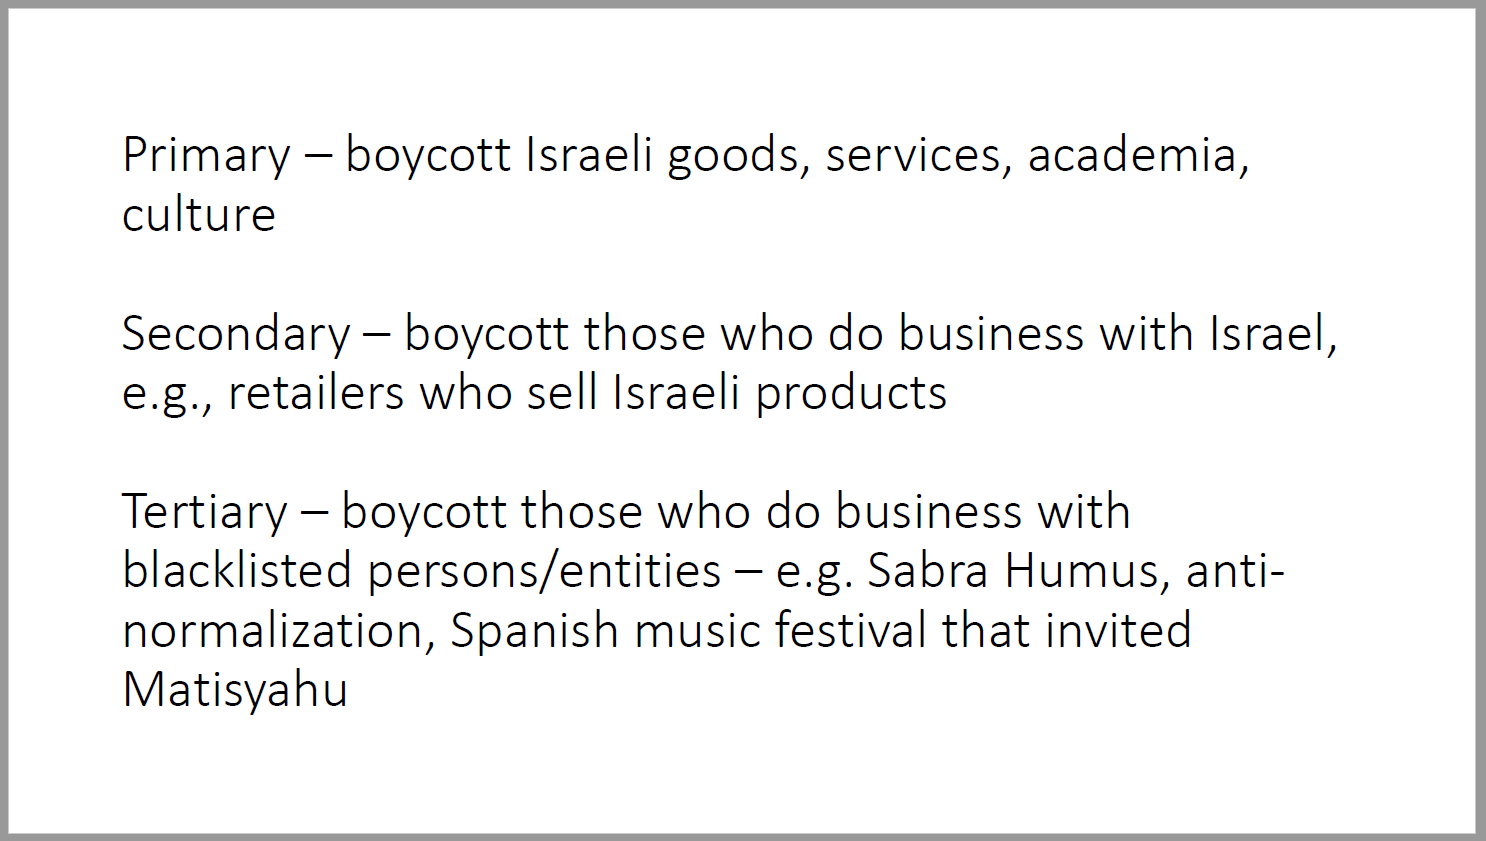 bds-history-bds-structure-similar-to-arab-league